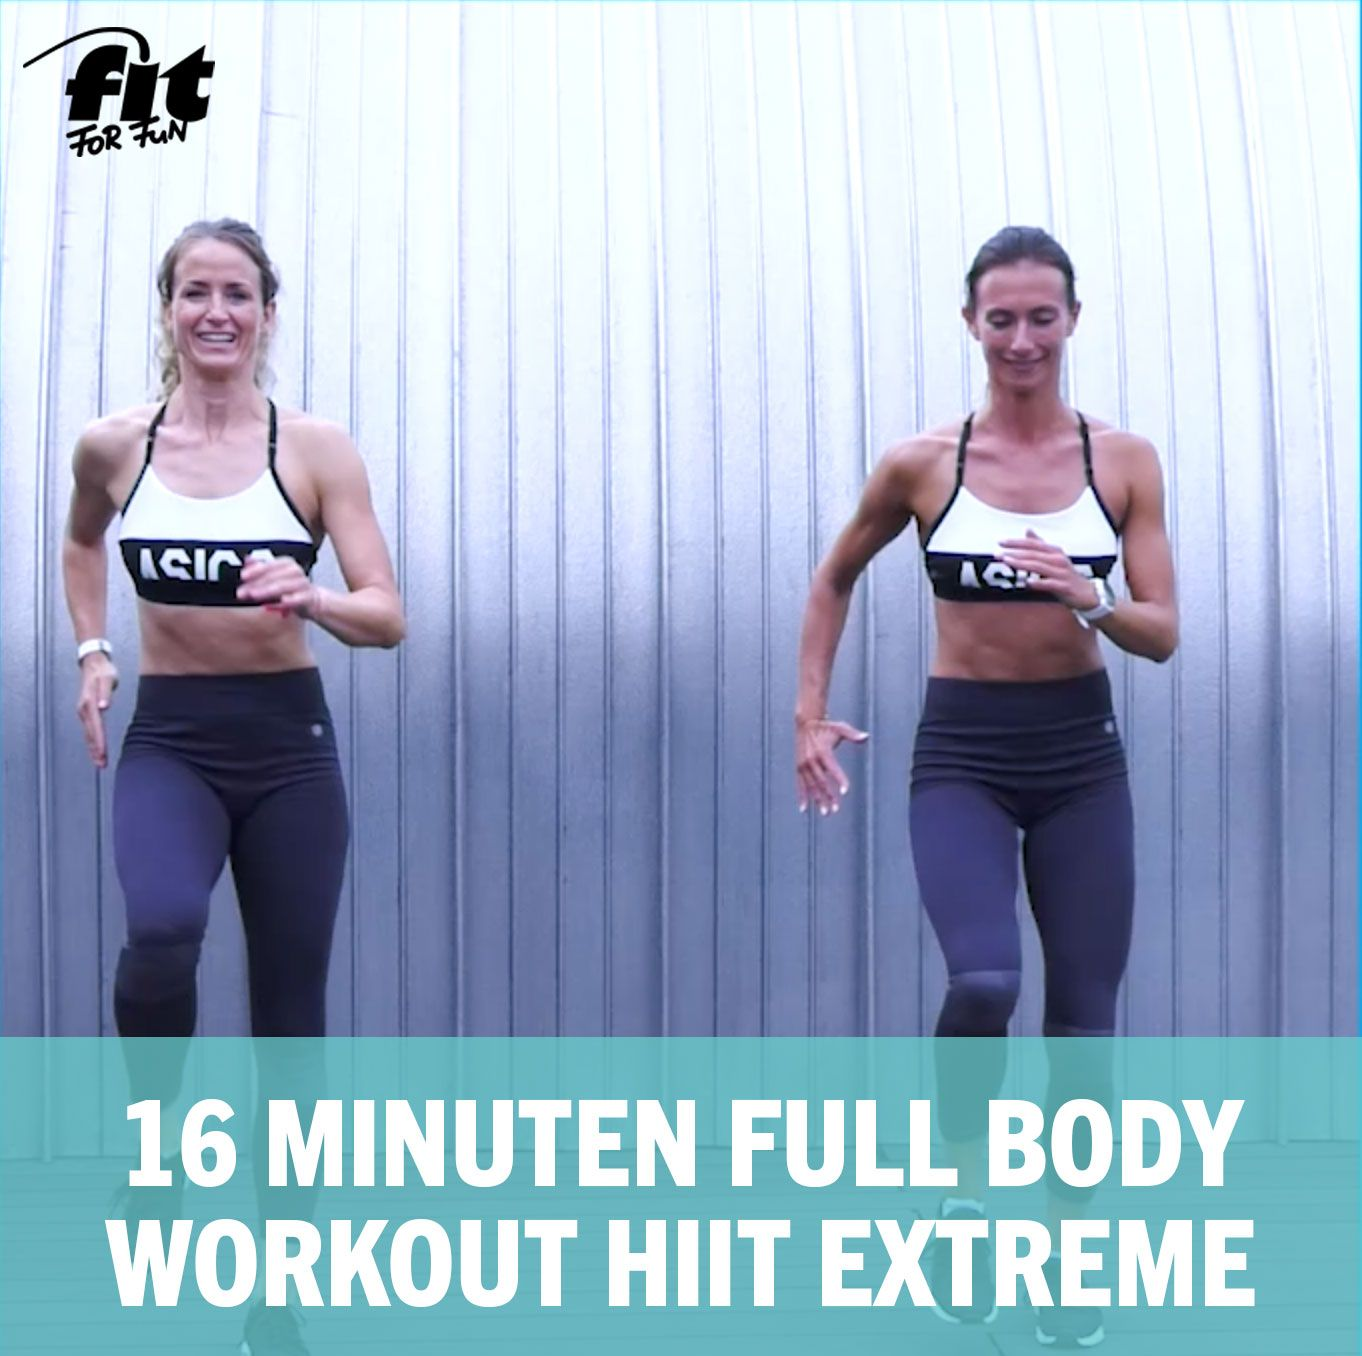 Ganzkörper Bodyweight Training: 16 Minuten Full Body Workout HIIT Extreme